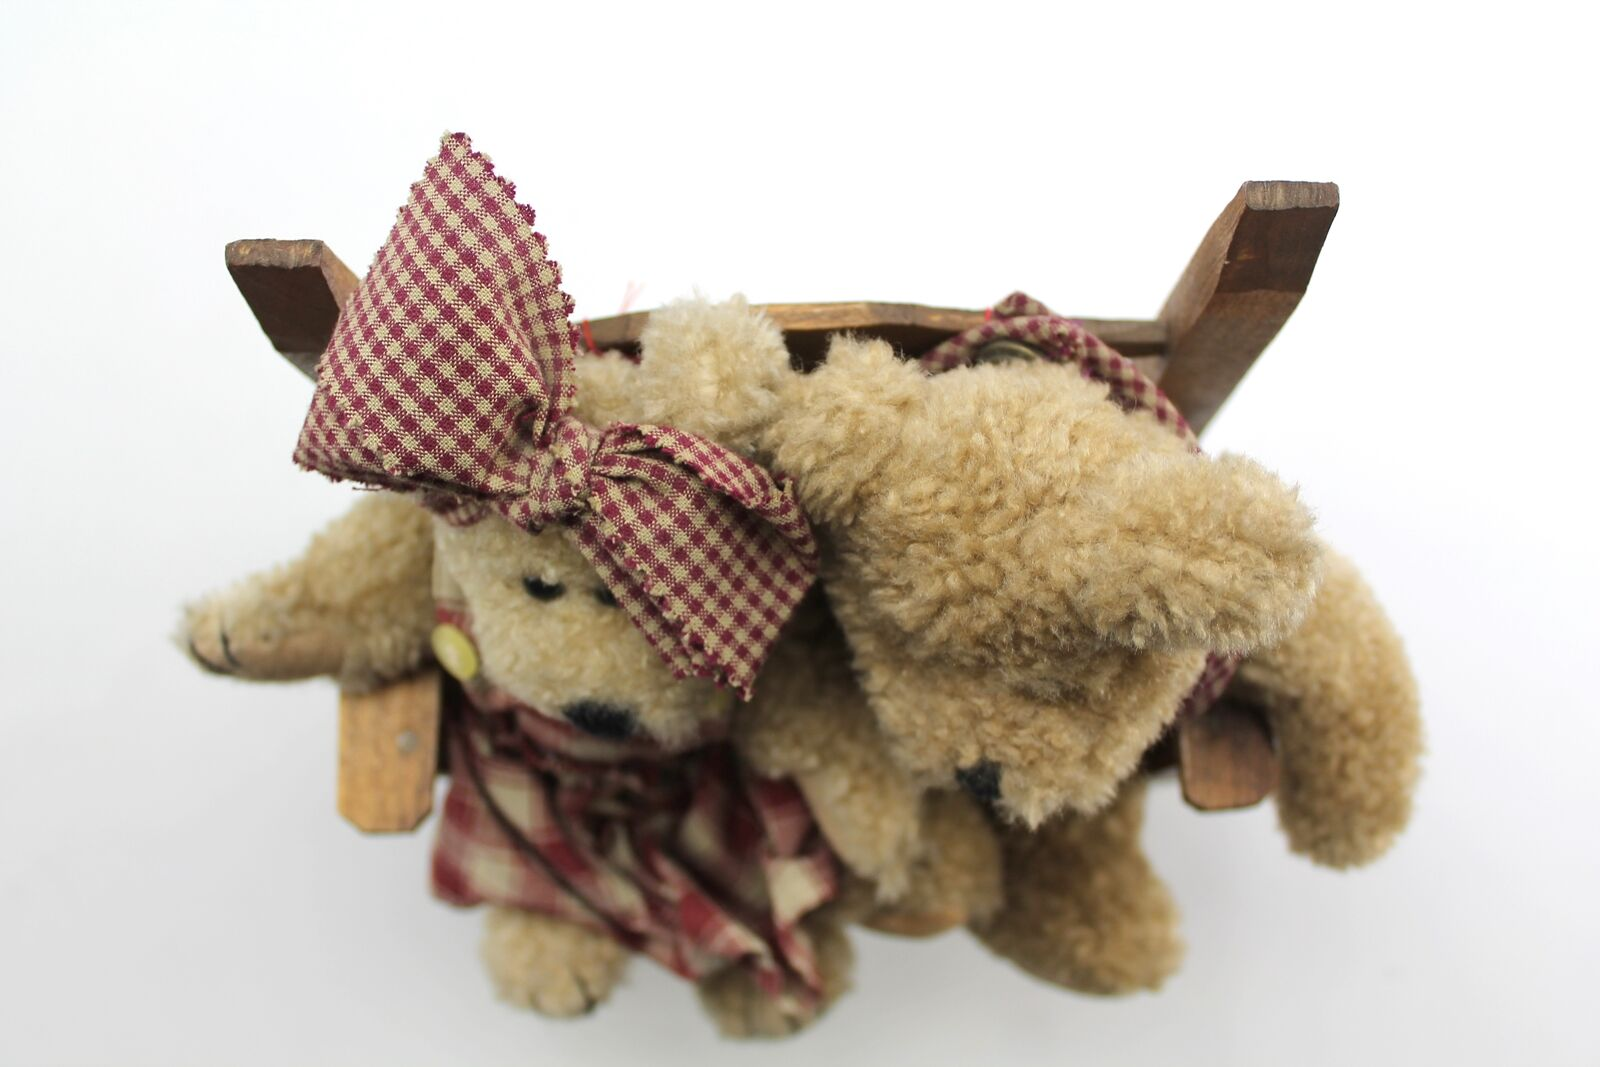 Boyds Bears Bosley Boy & Eudemia Girl Pair in in in Bench rot Gingham Jumper & Bib b0ab59